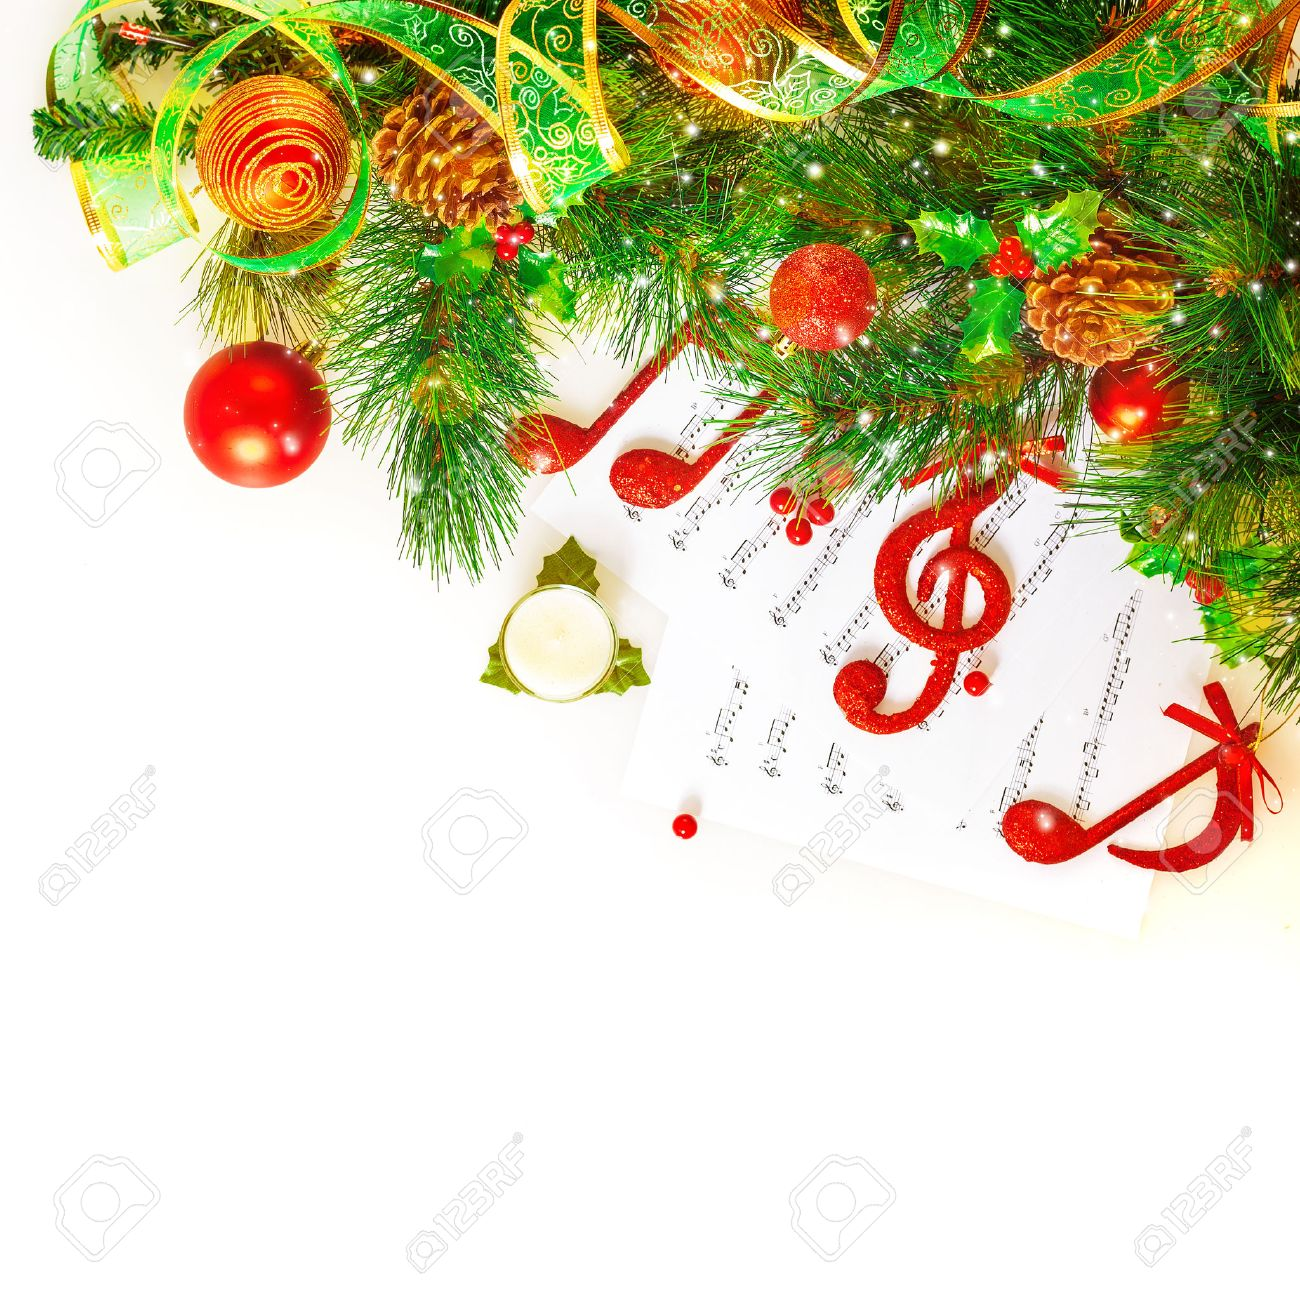 Festive musical still life, red treble clef and notes decorated fresh green fir tree branch isolated on white background, Christmas holidays concept Stock Photo - 23569465